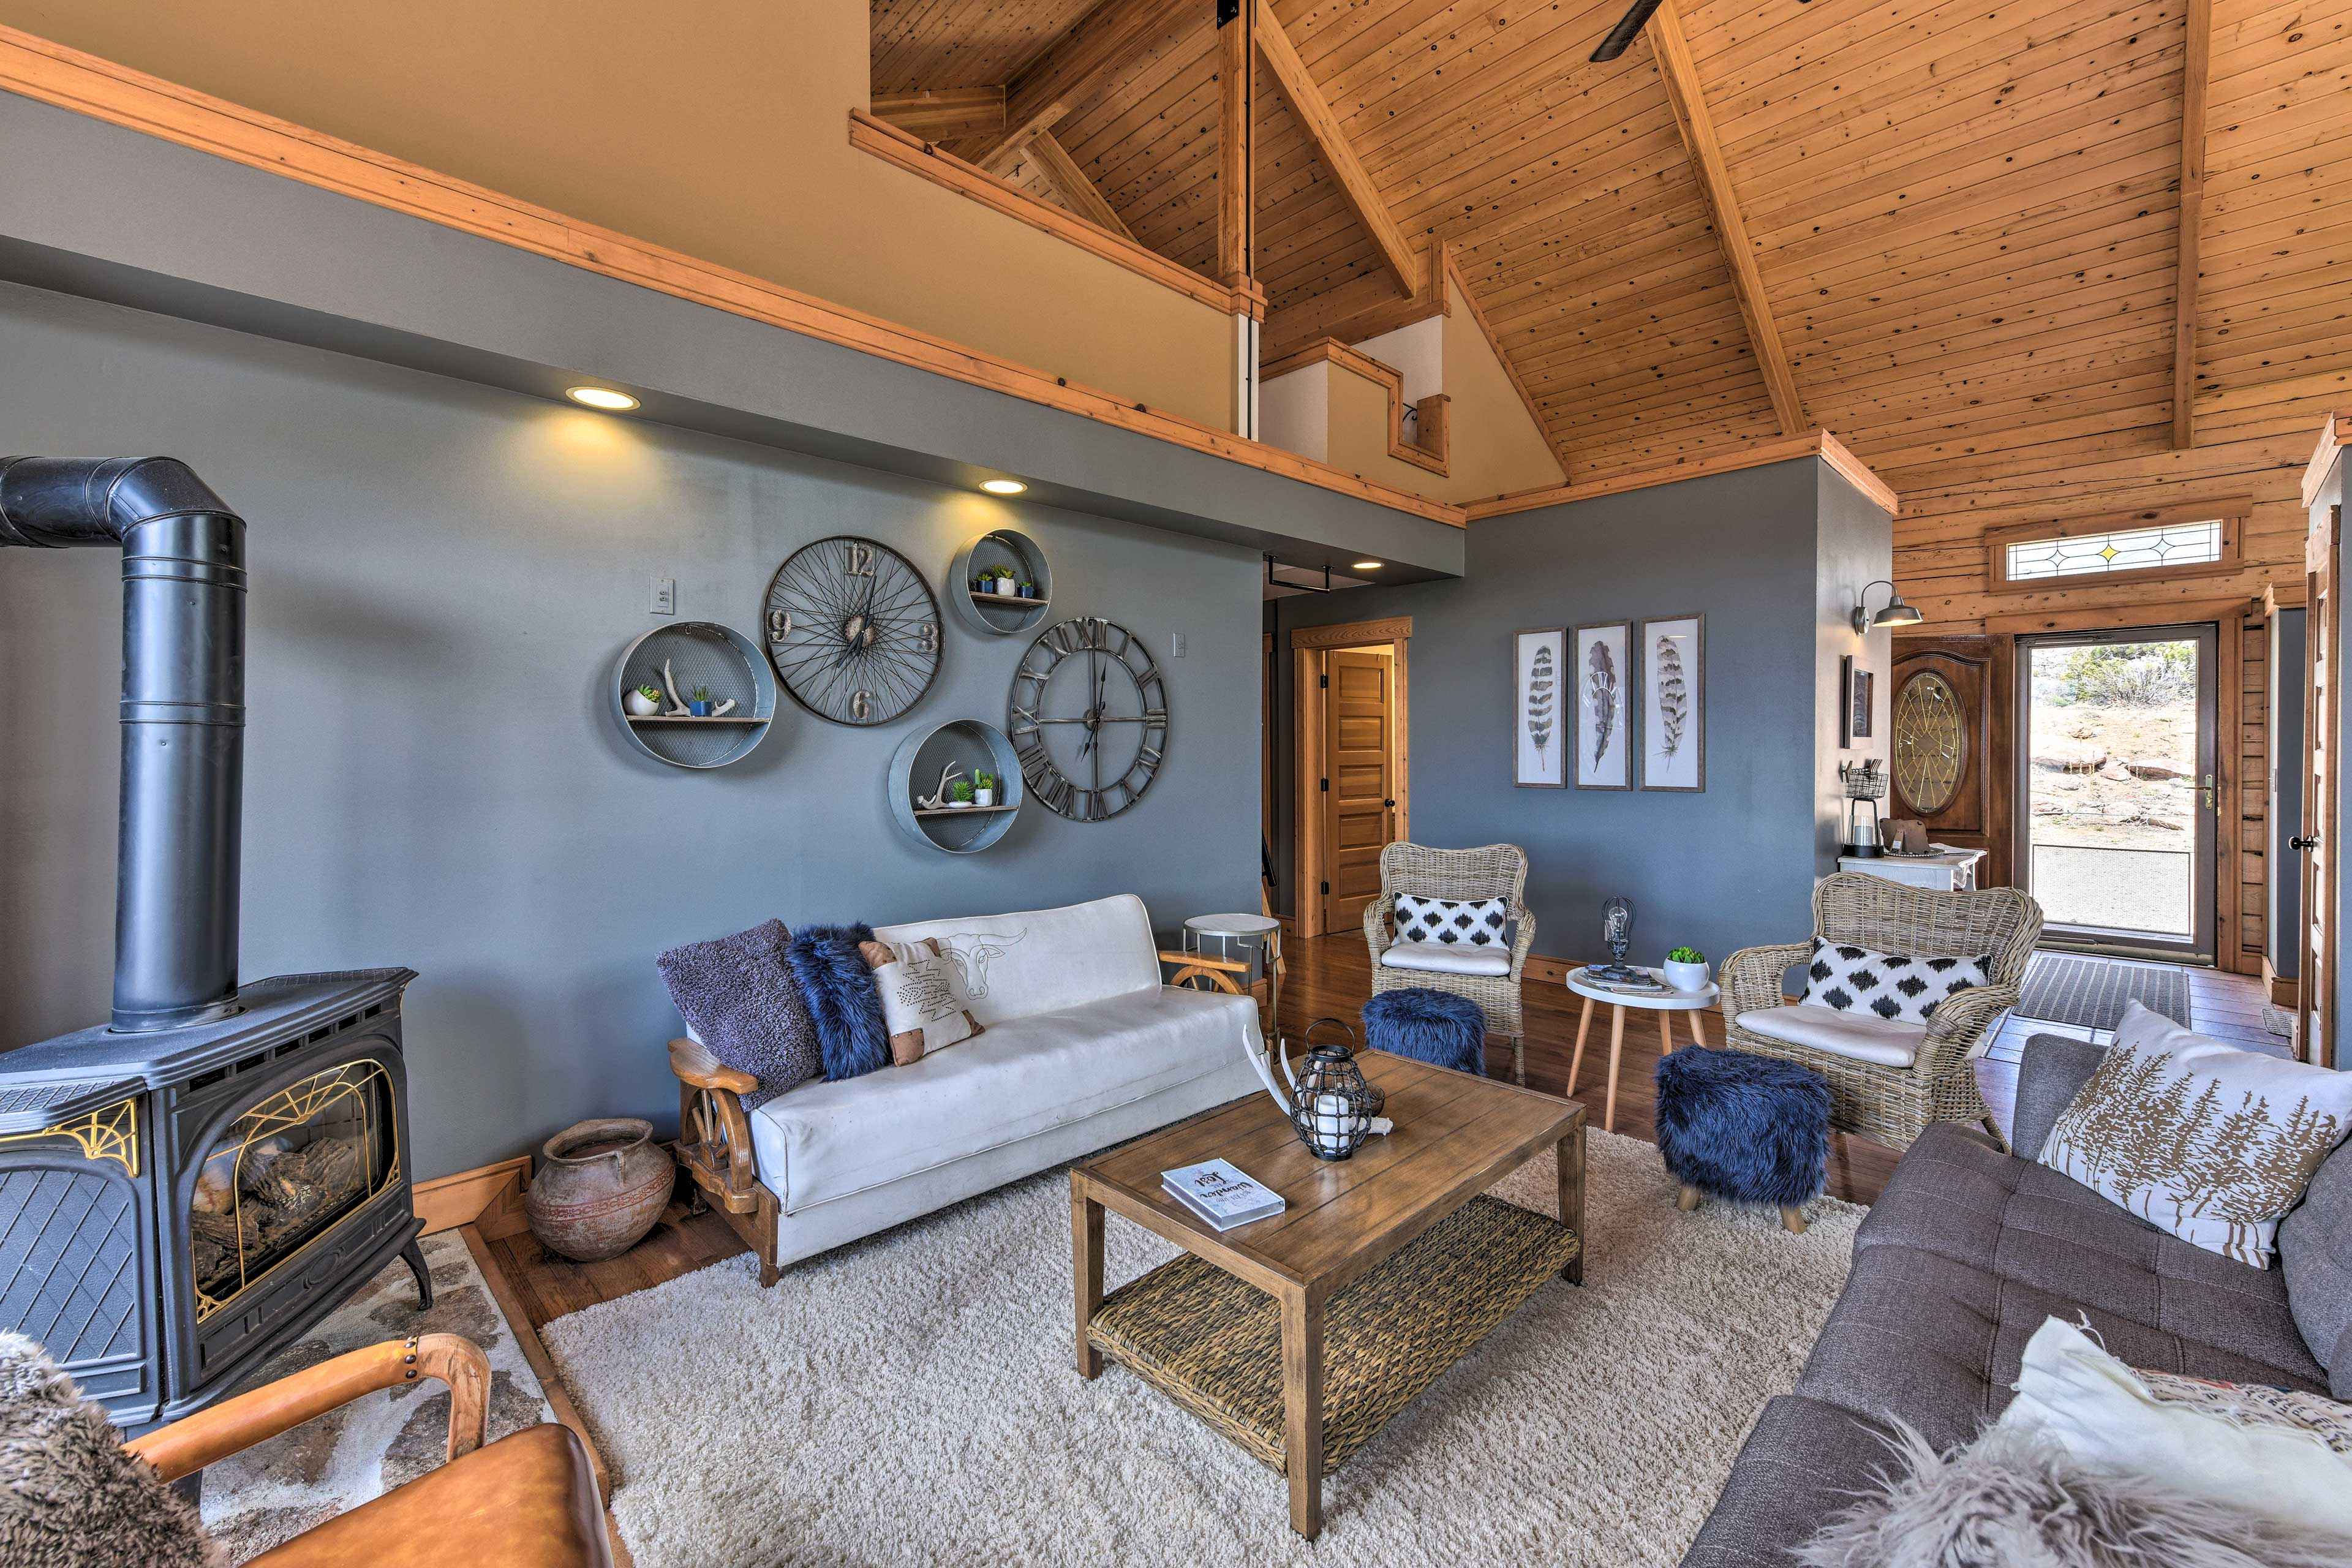 With exposed beam cathedral ceilings, this cabin is incredibly spacious.